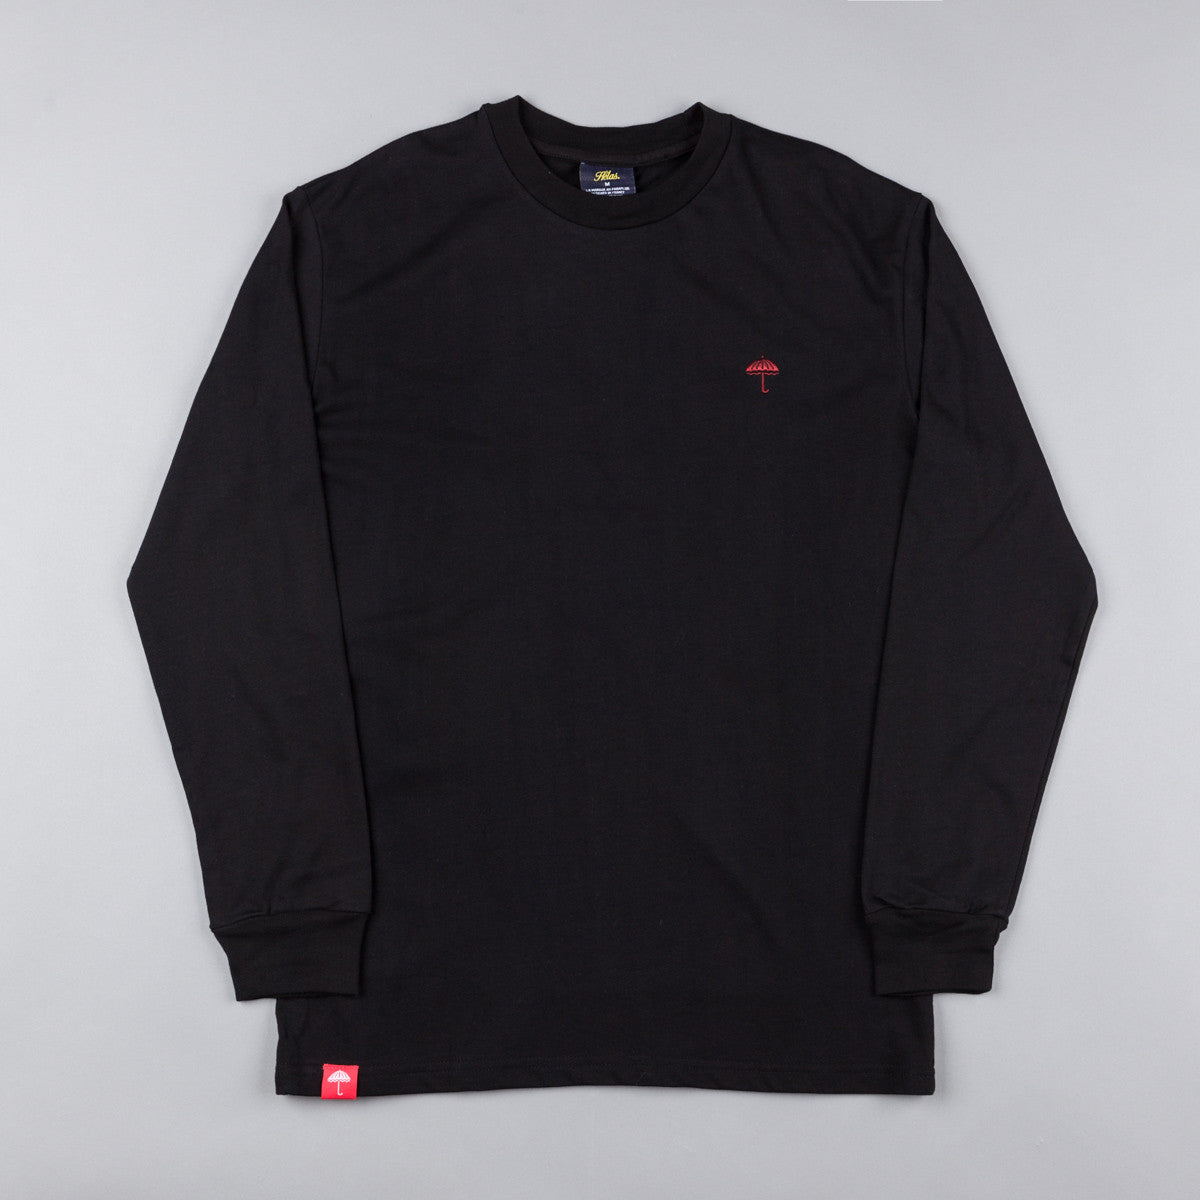 Helas Classic Long Sleeve T-Shirt - Black